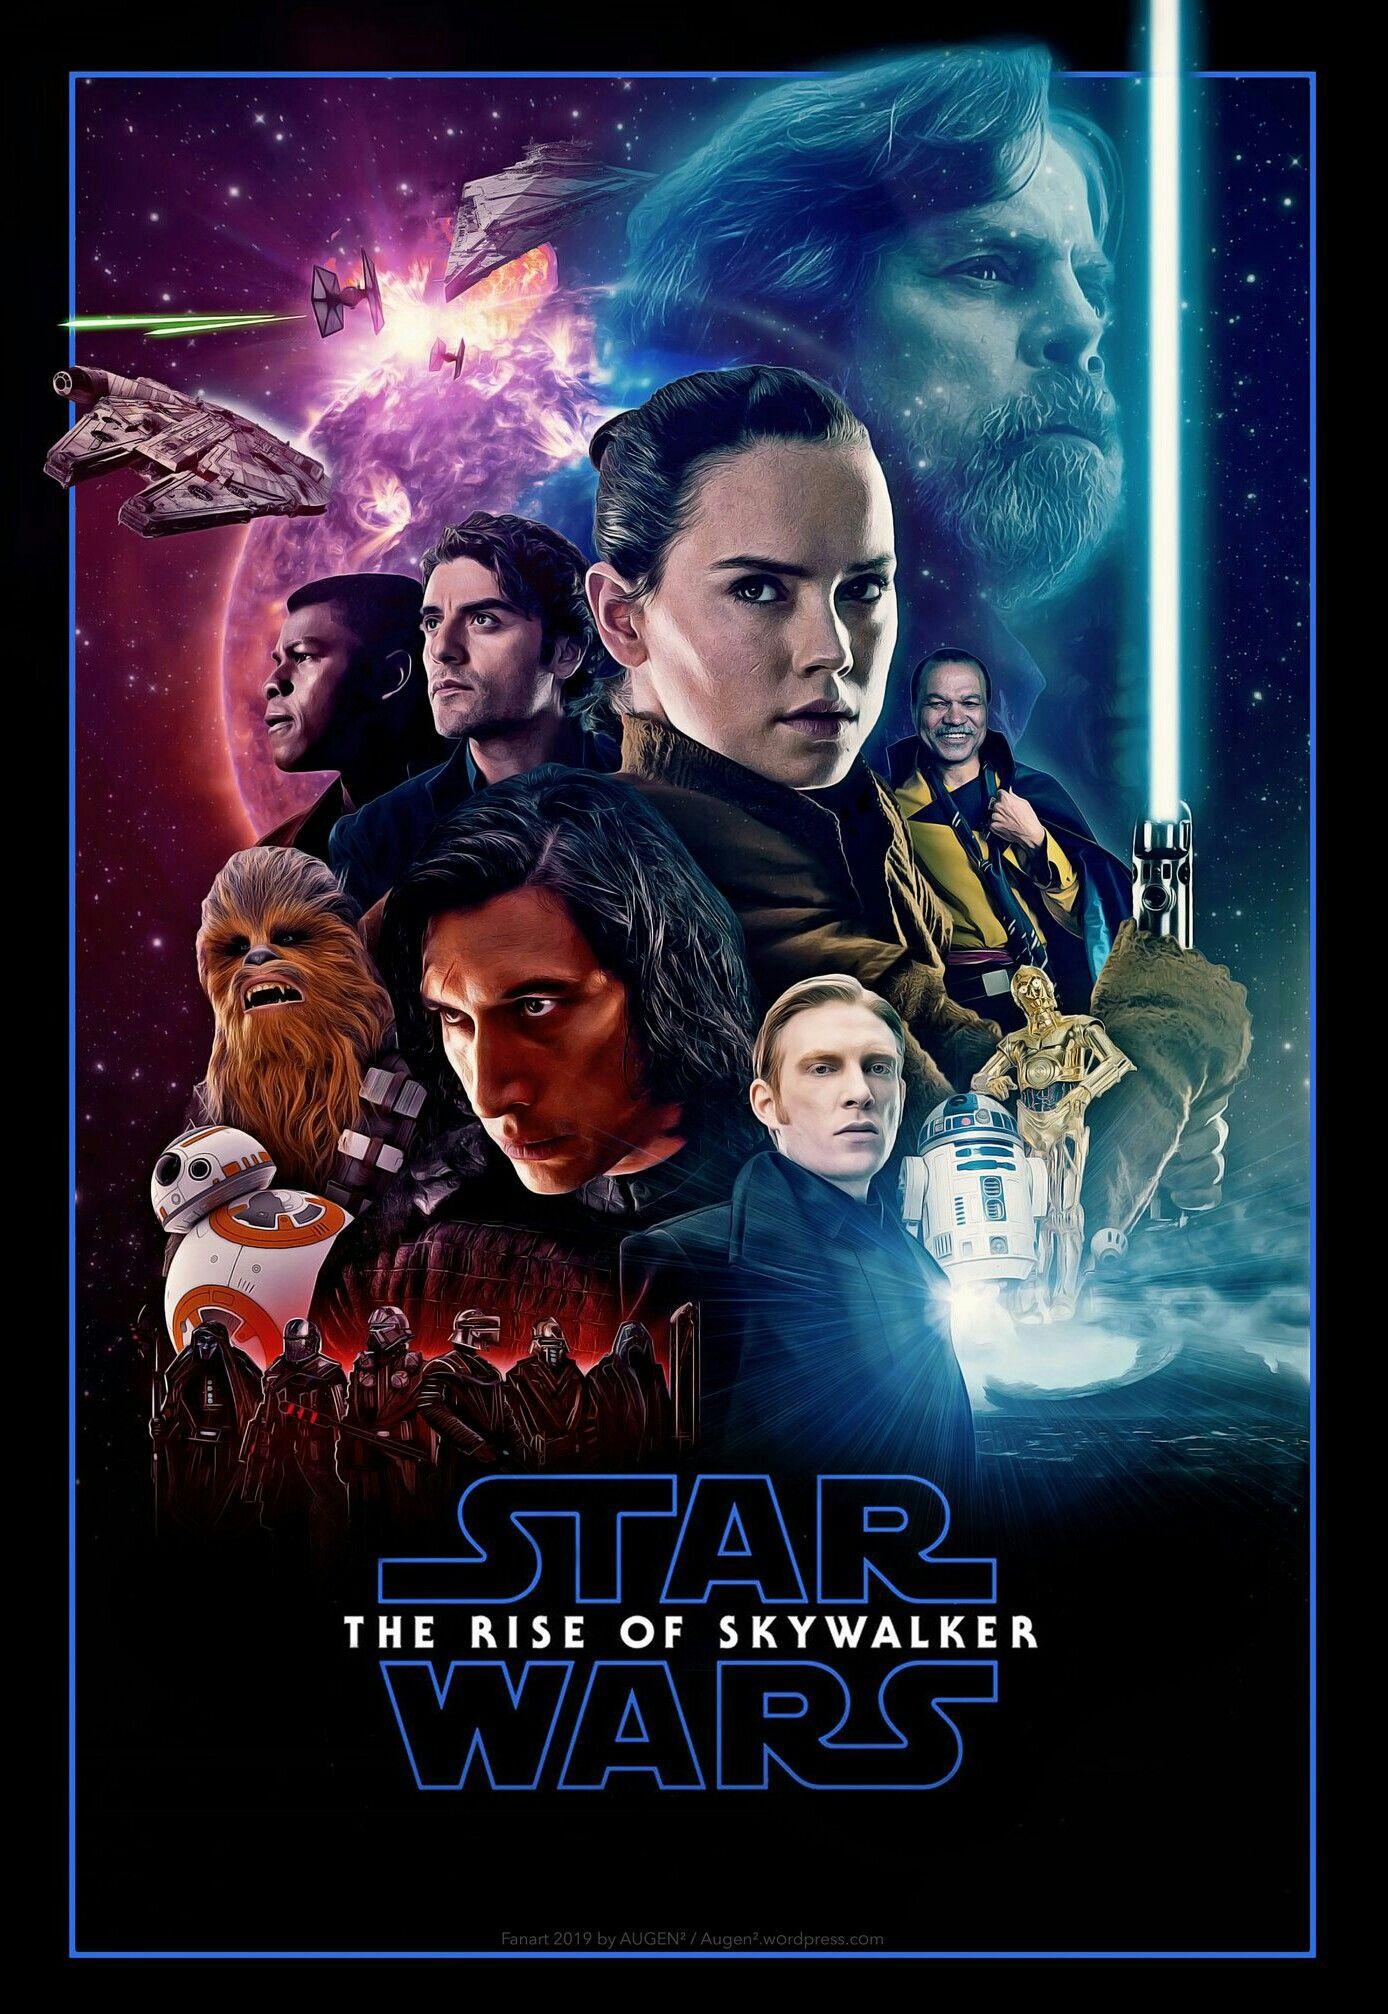 The Rise Of Skywalker Star Wars Poster Star Wars Movies Posters Star Wars Episodes